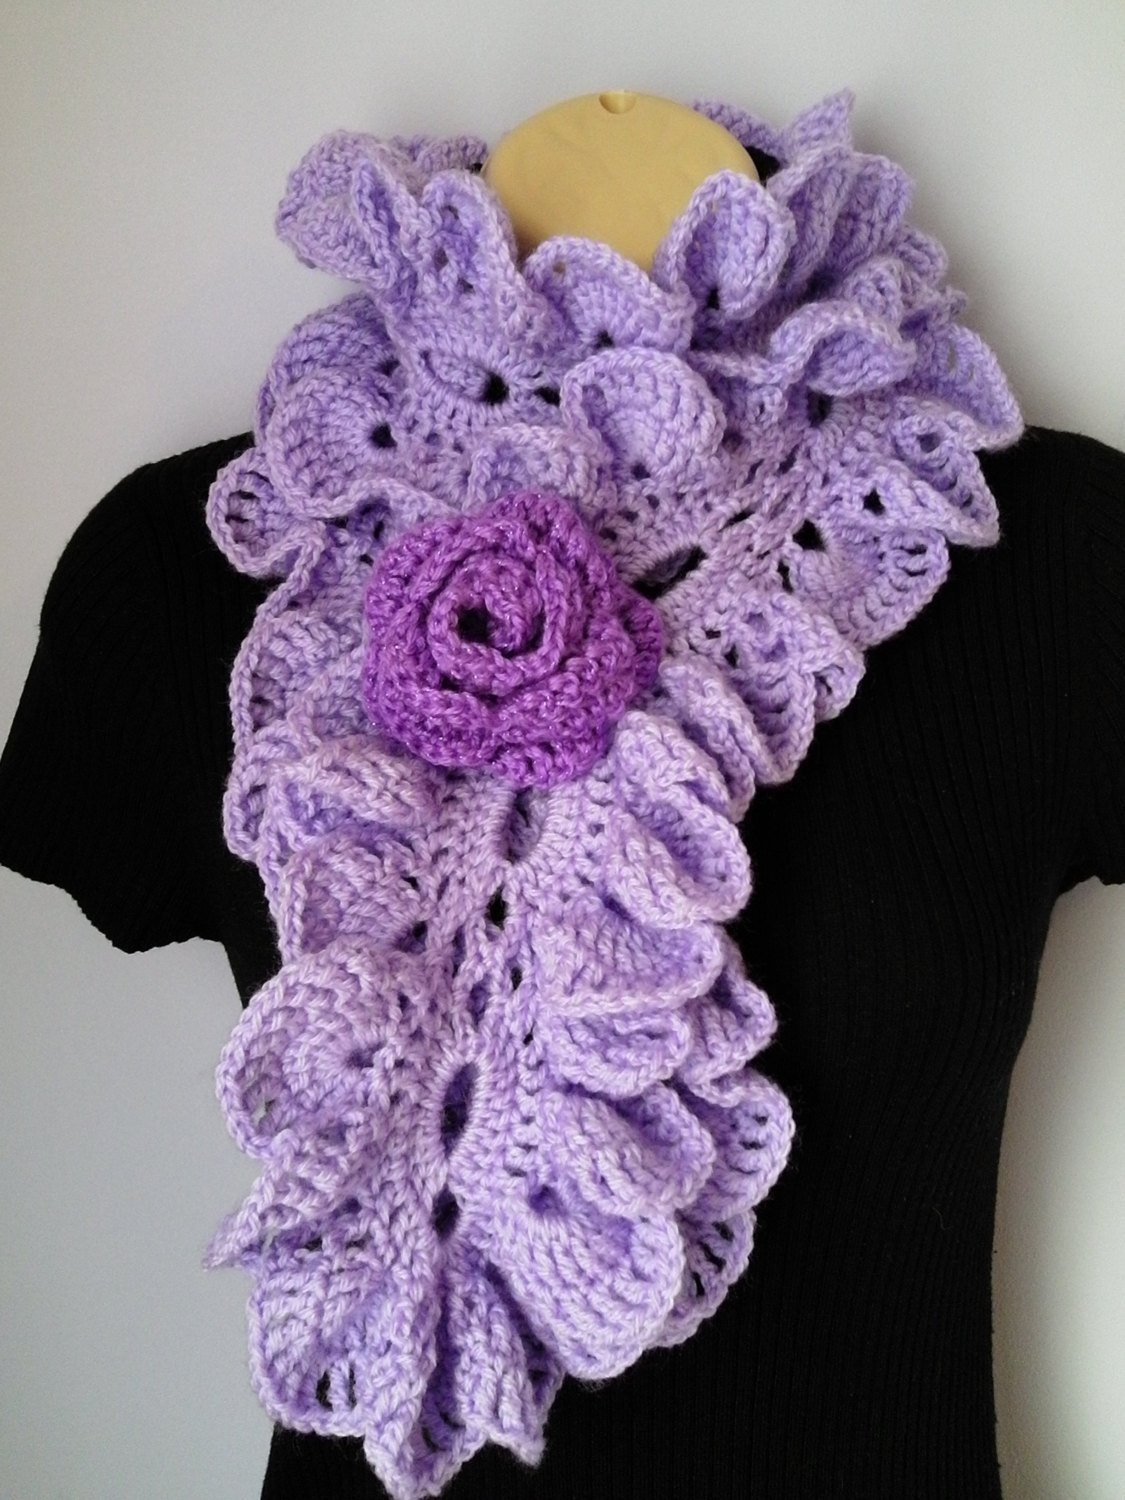 Best Of Crochet Scarf Neckwarmer Flower Brooch Ruffle Accessories Crochet Ruffle Scarf Of Lovely 41 Models Crochet Ruffle Scarf